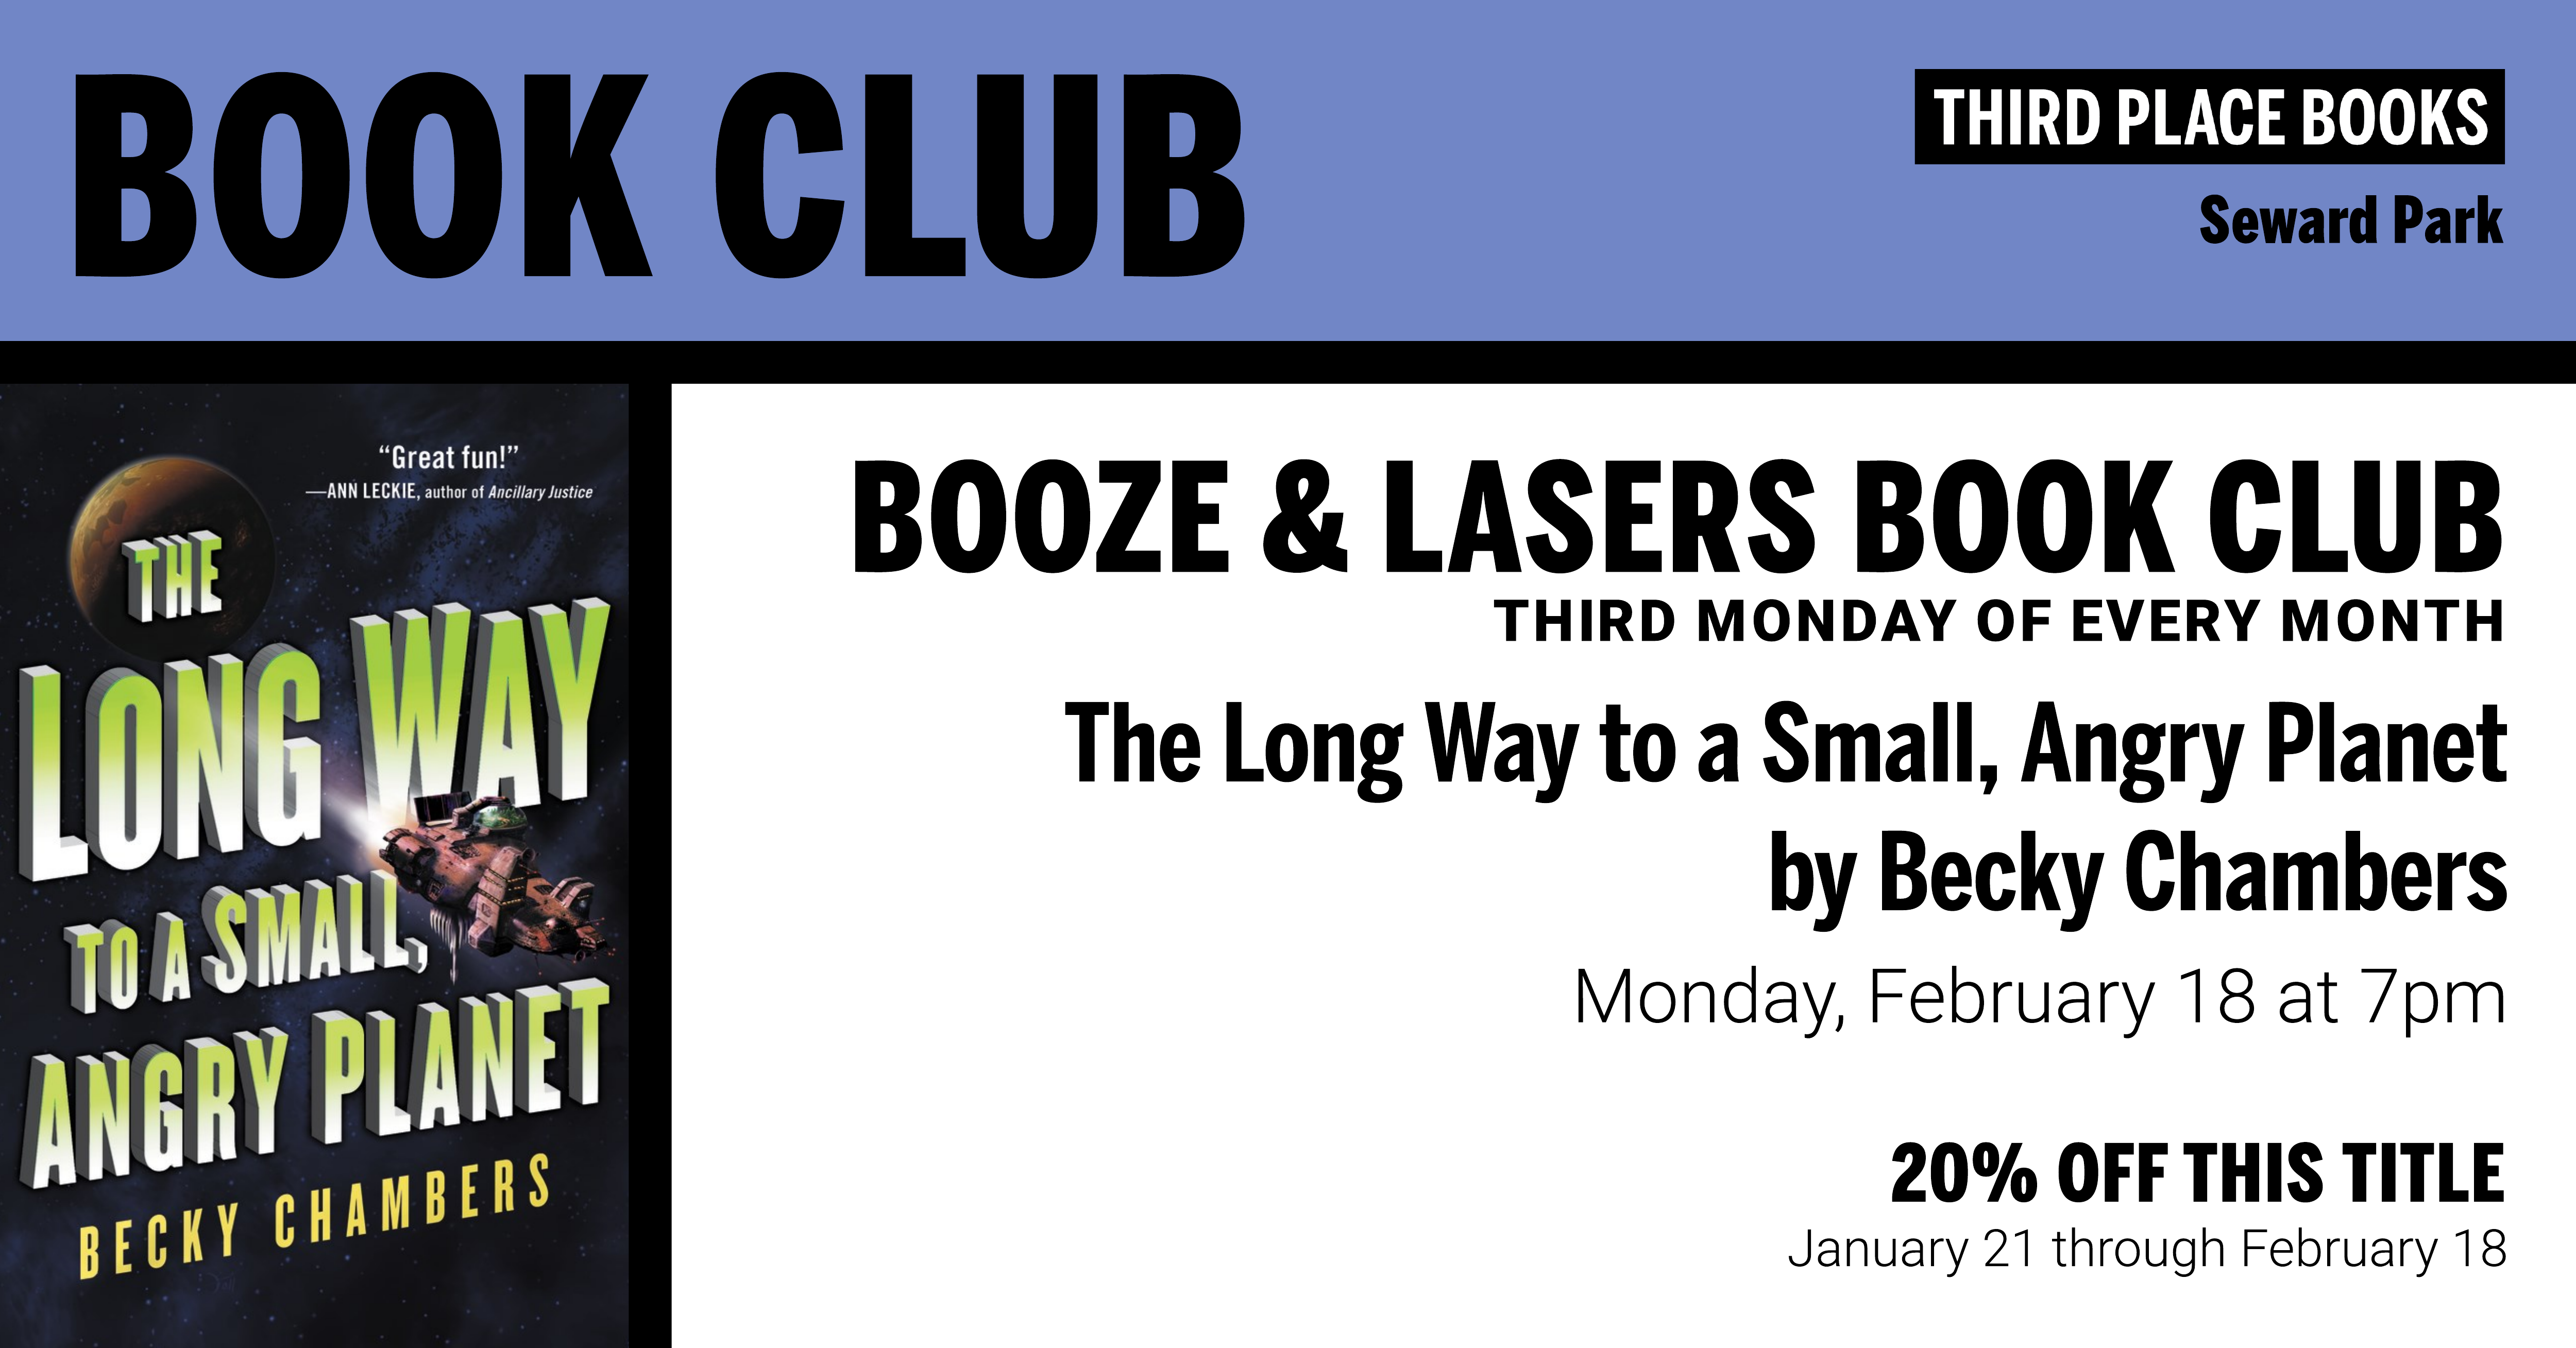 Booze & Lasers Book Club reading The Long Way to a Small Angry Planet by Becky Chambers on February 18 at 7pm